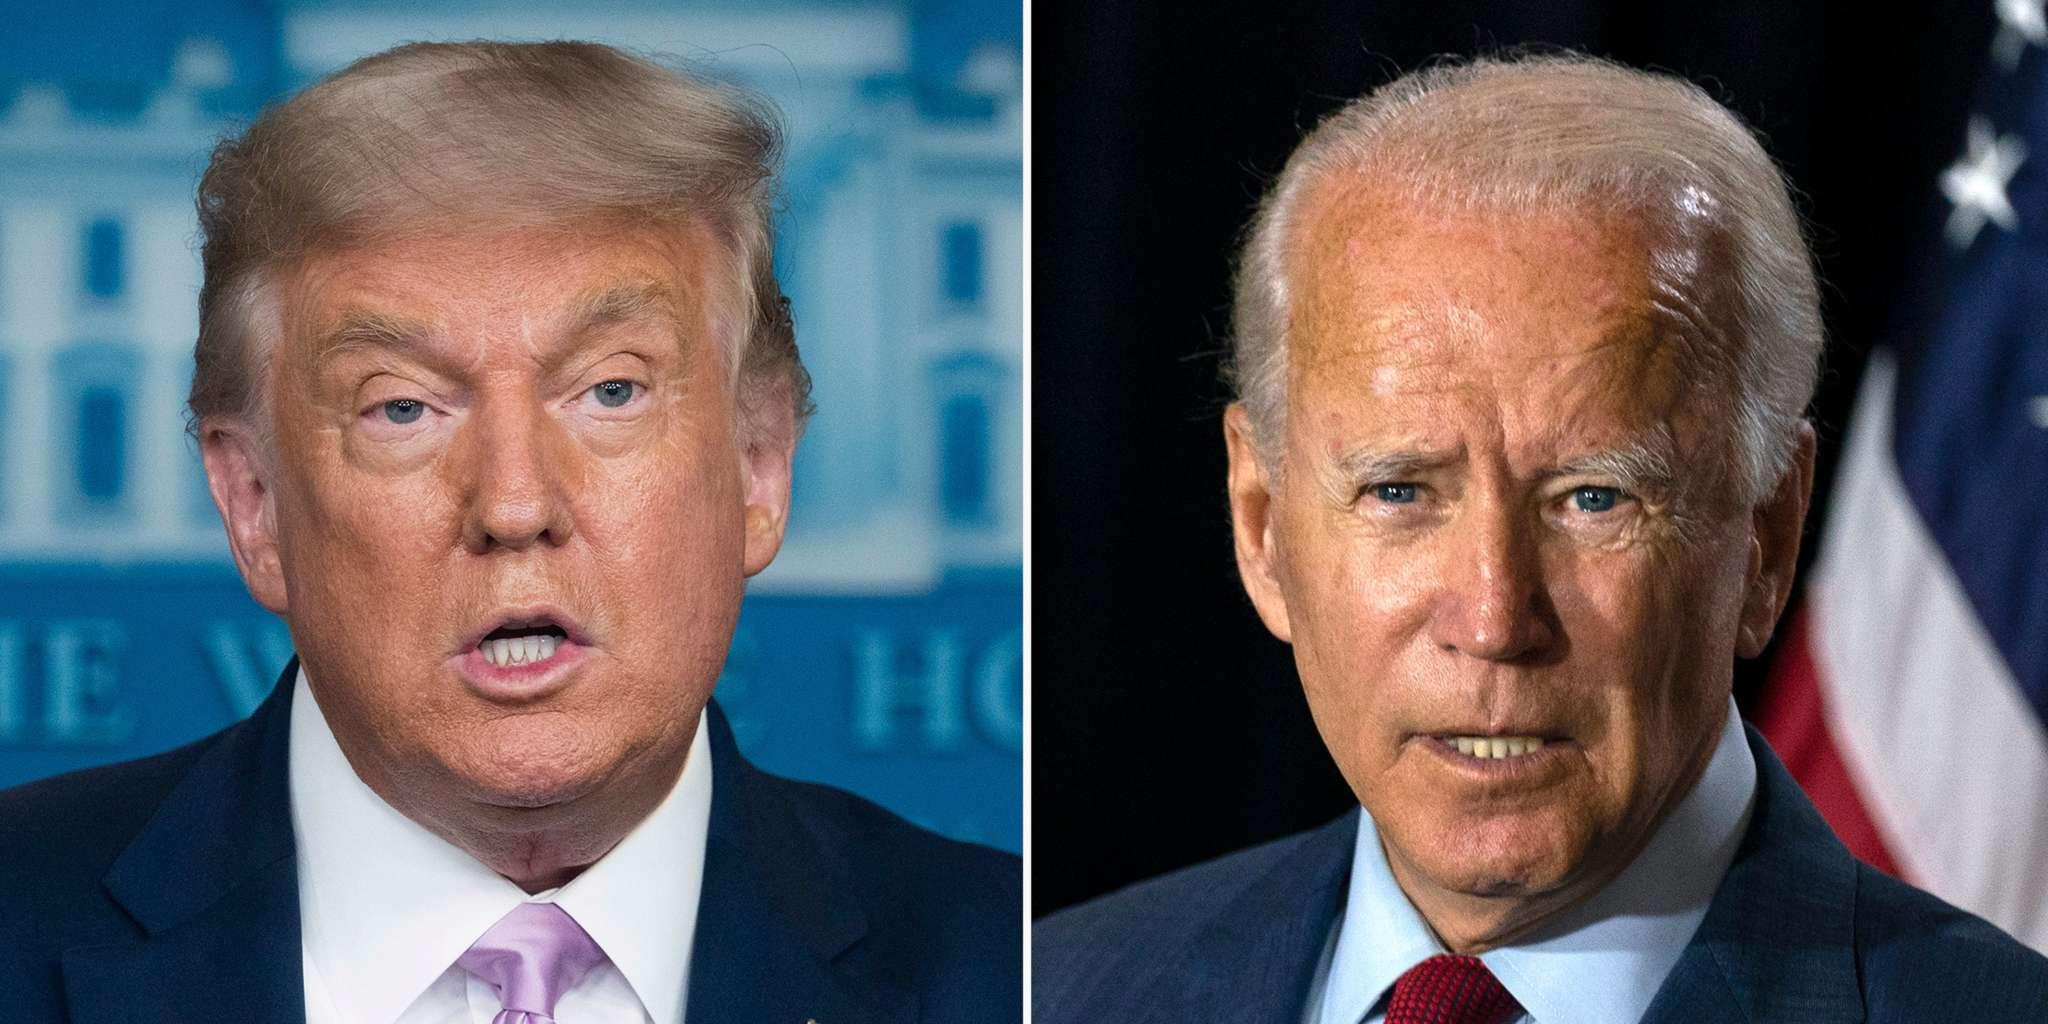 Joe Biden Calls Donald Trump Out After Officially Winning The Electoral College